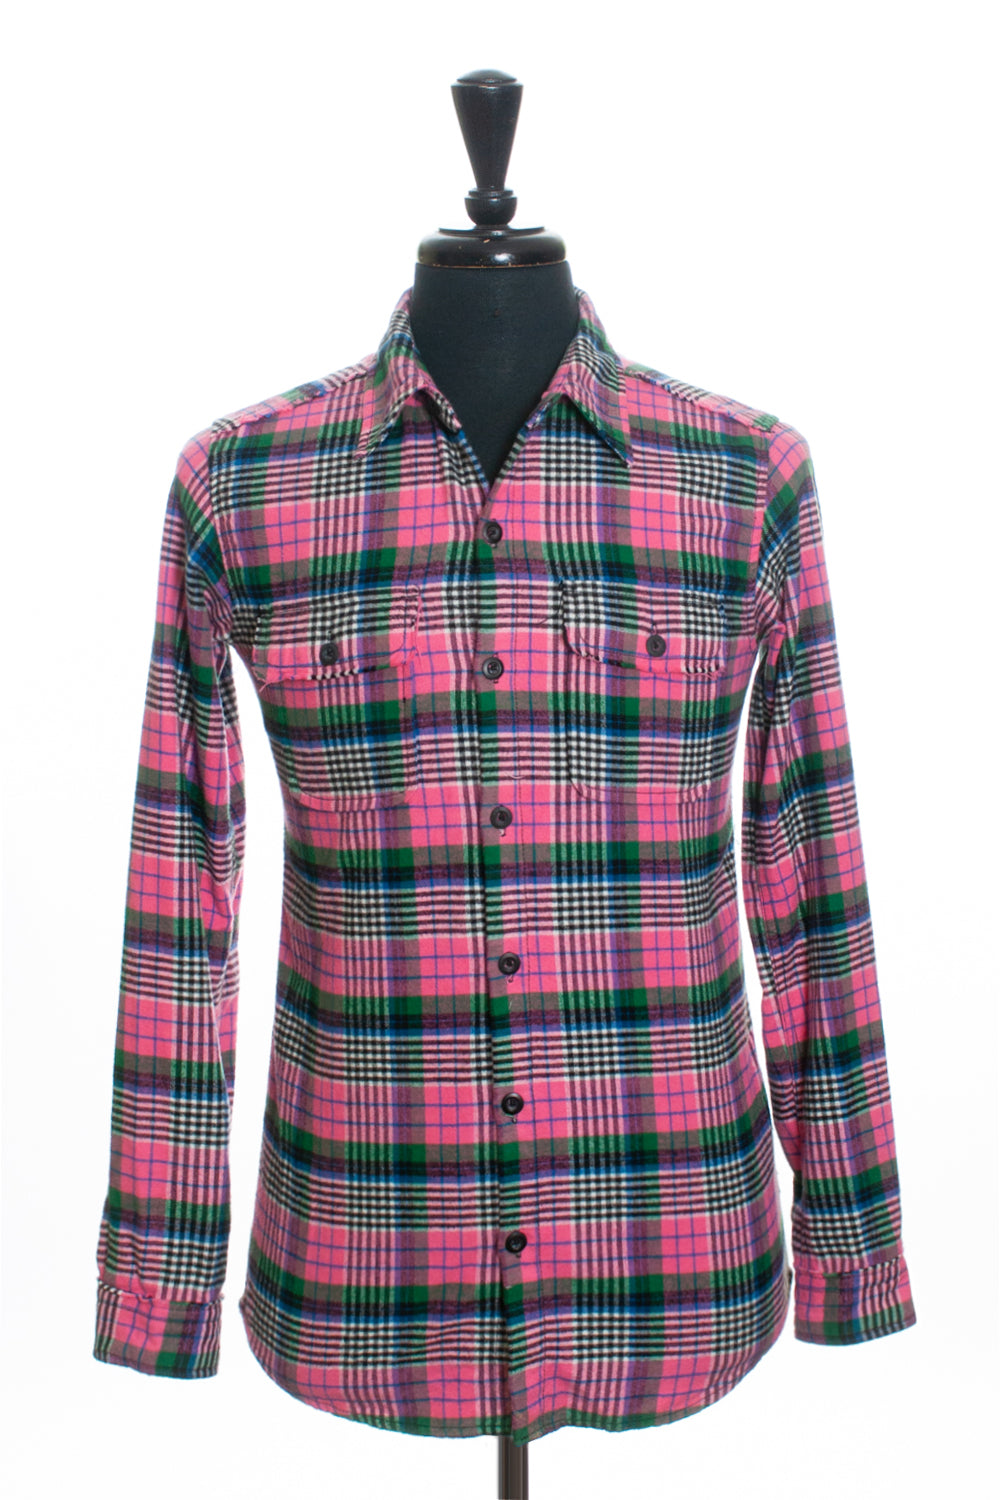 Izzue Japan Pink Plaid Distressed Seam Flannel Shirt for Luxmrkt.com Menswear Consignment Edmonton